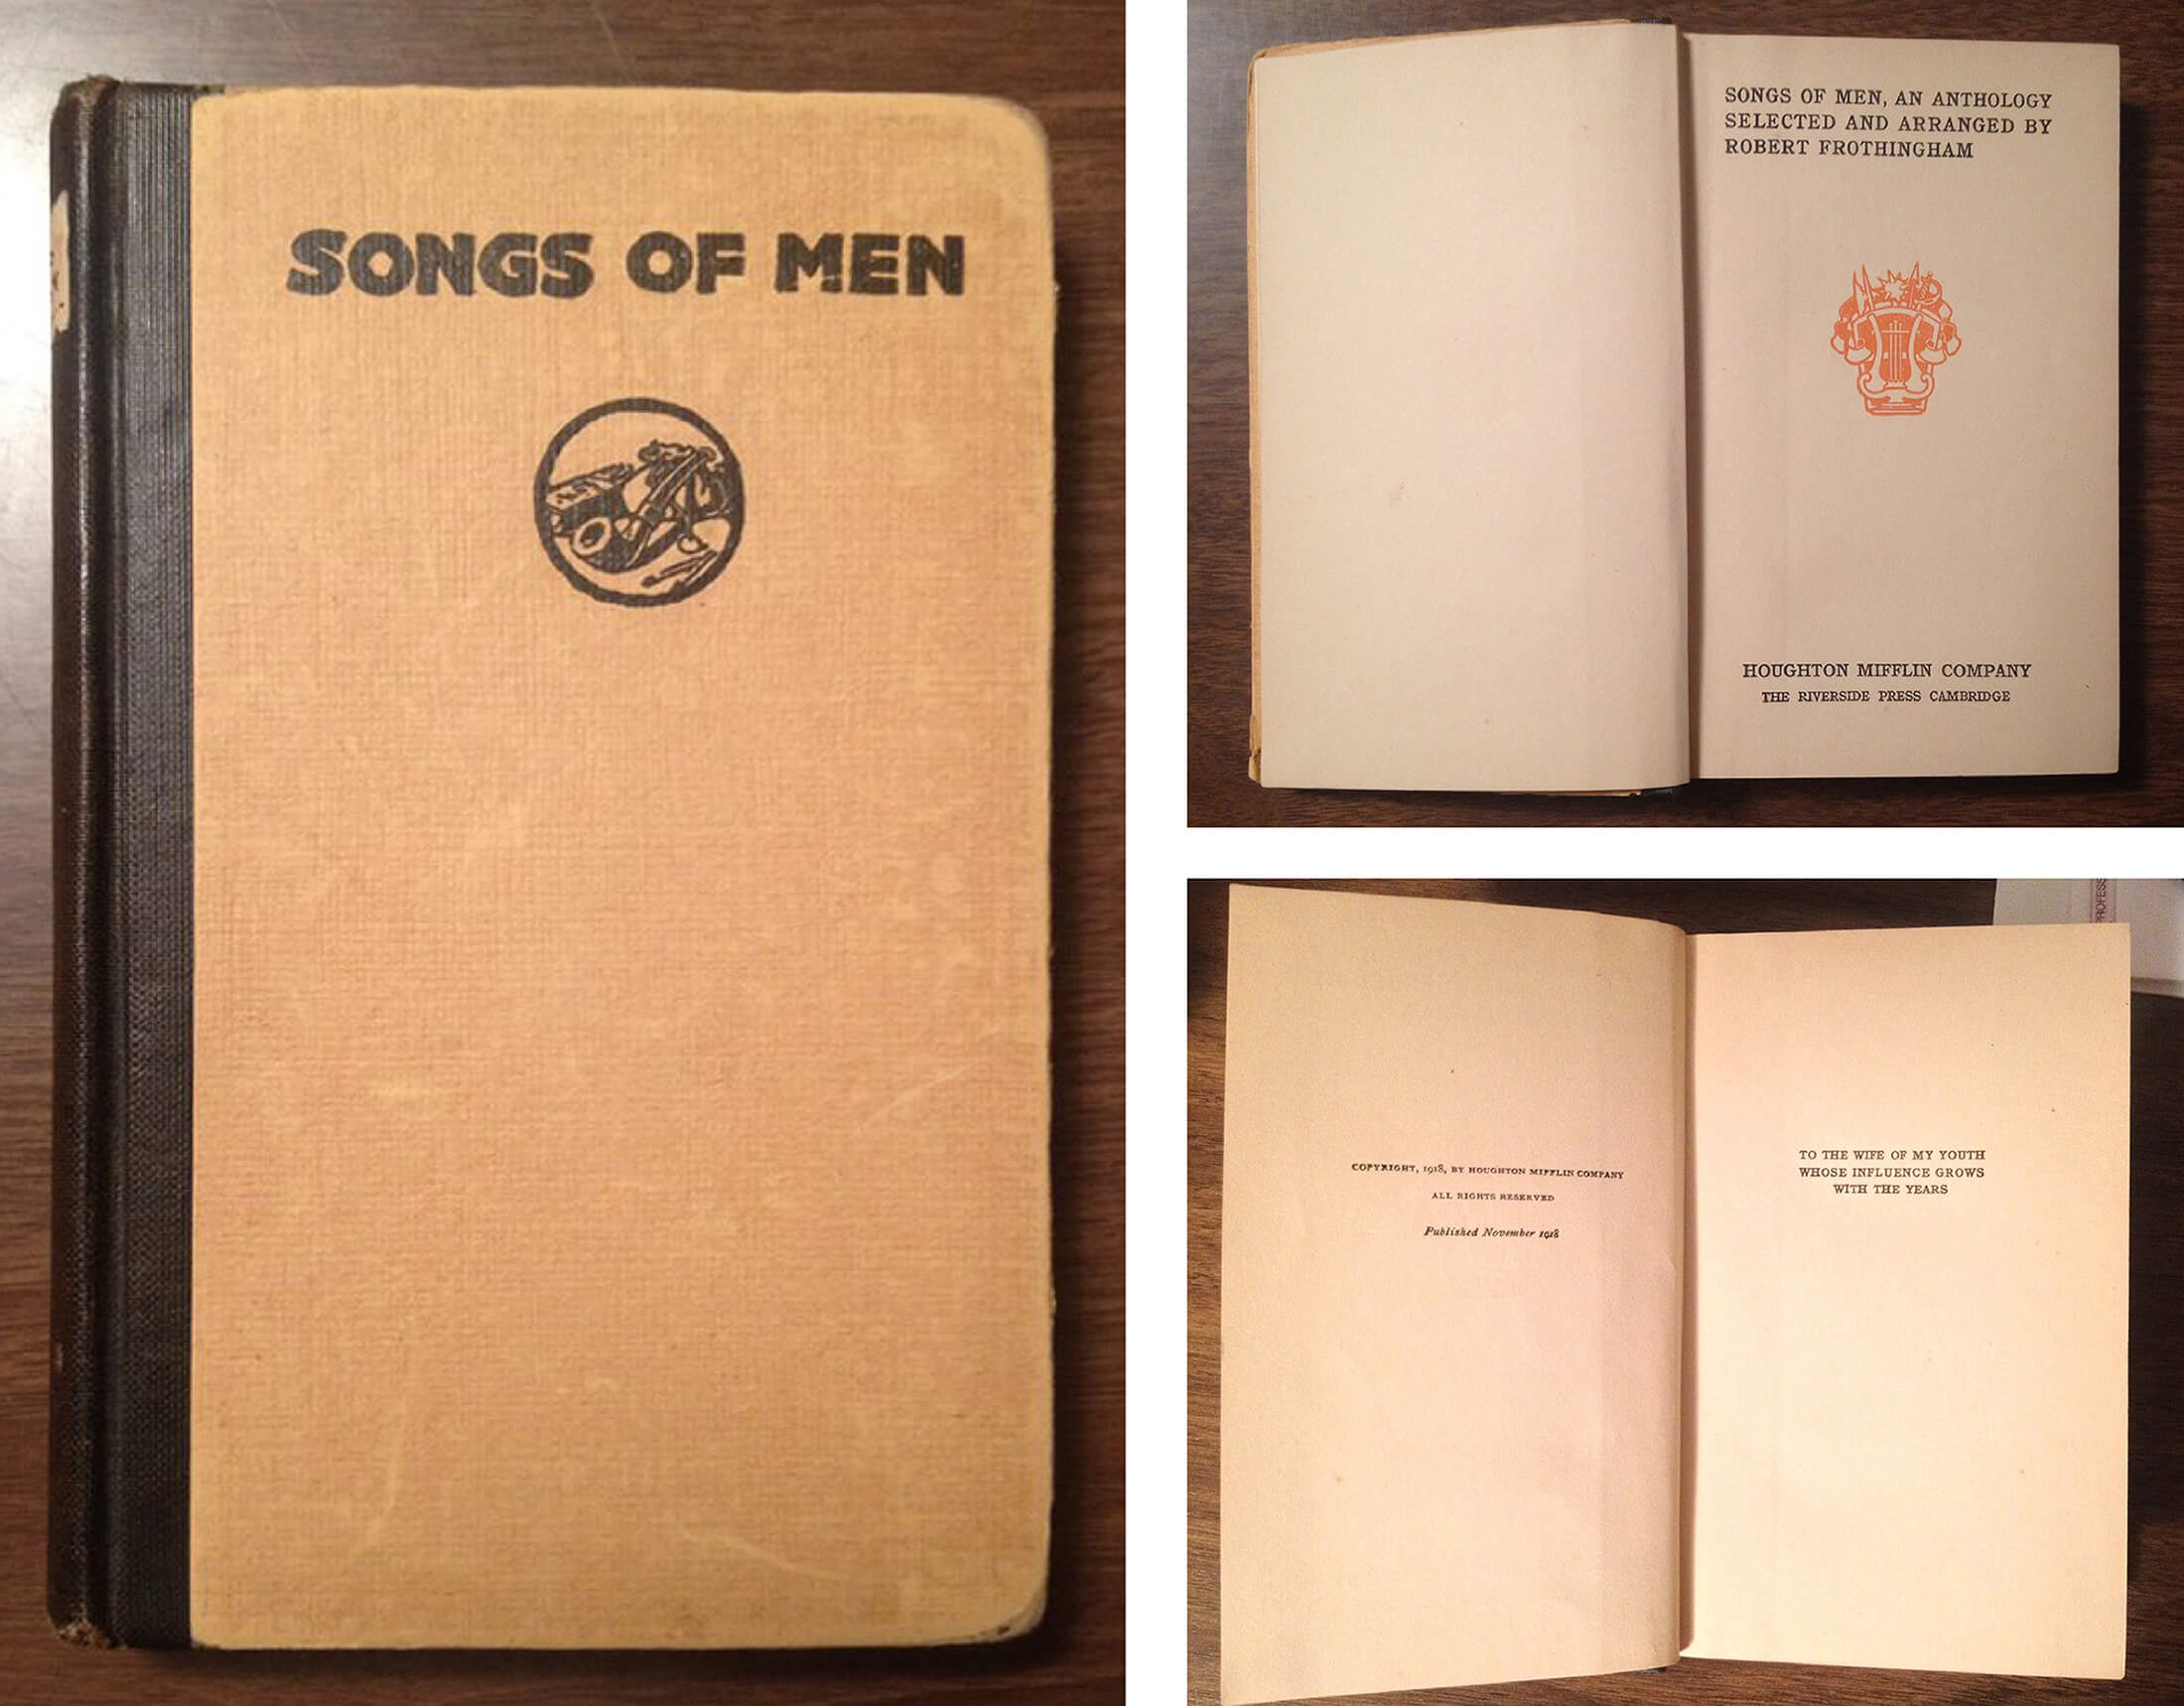 Songs of Men, Robert Frothingham, 1918-DFB